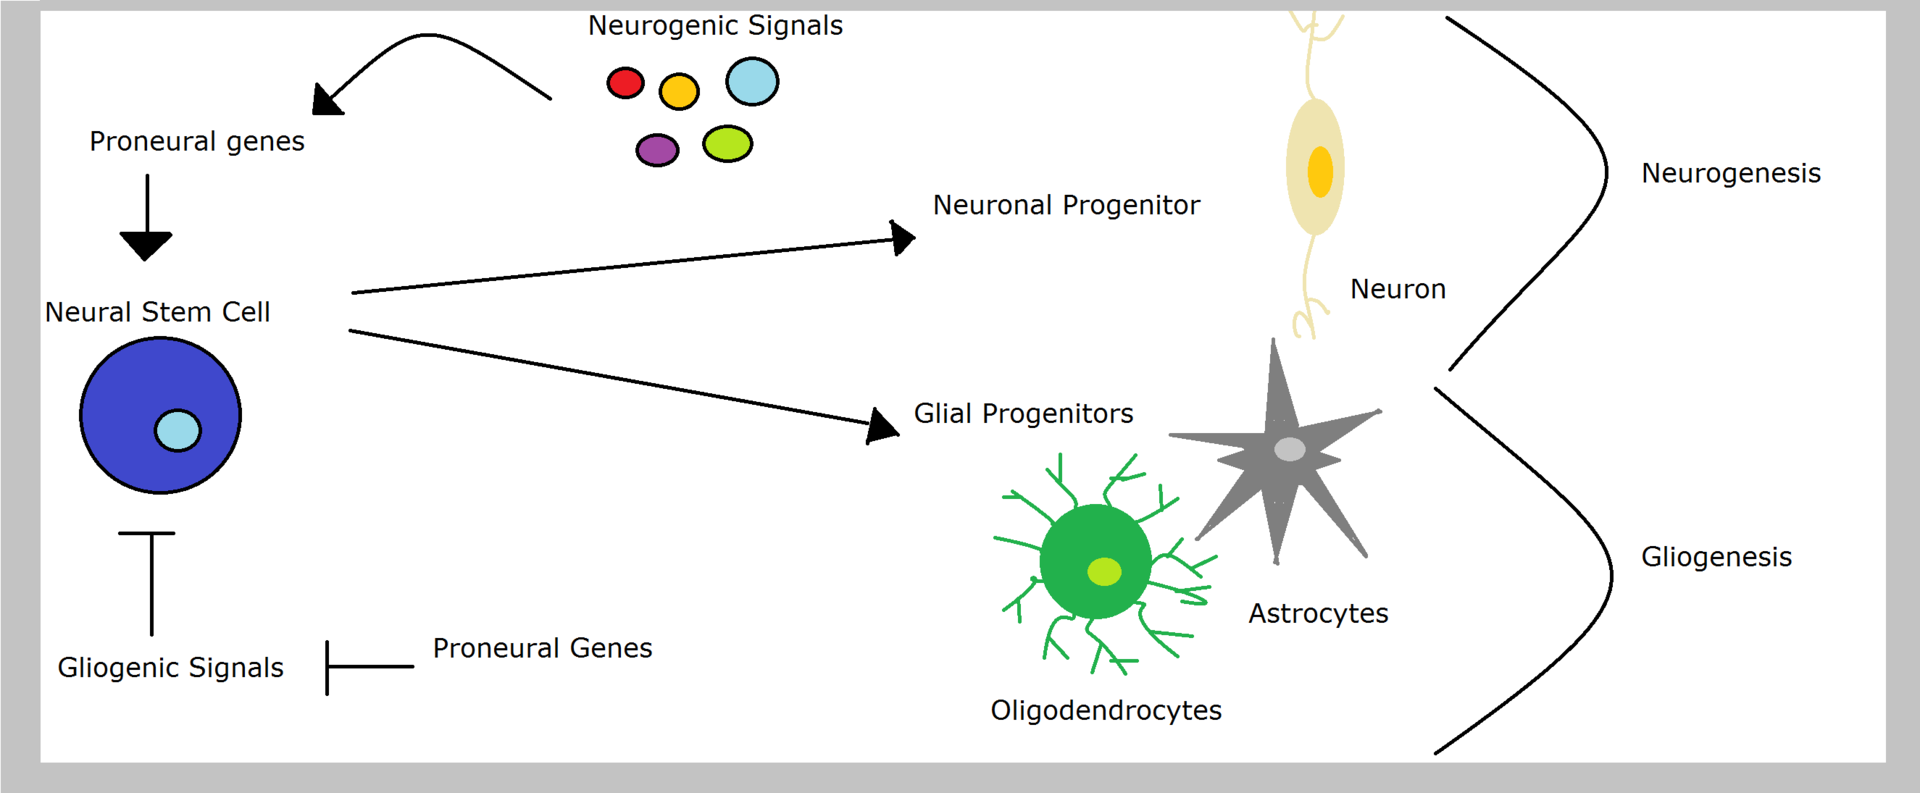 Difference Between Neurogenesis Neuroplasticity and Neuroregeneration